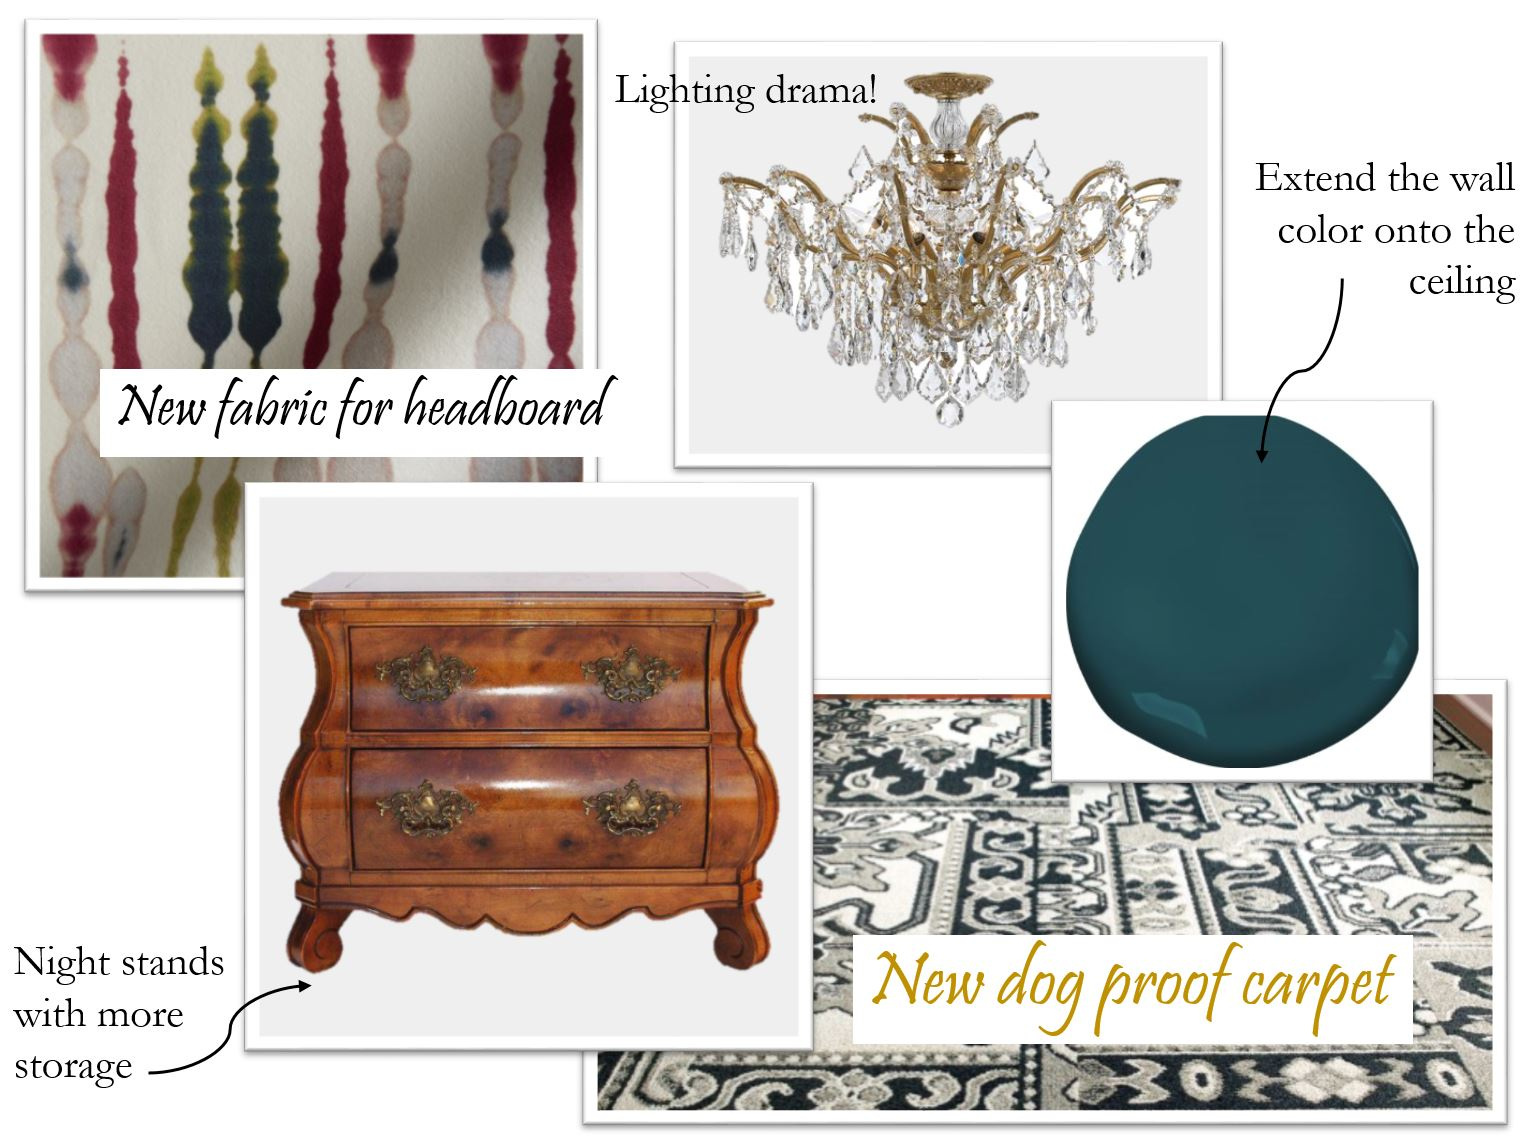 grand rapids interior designer, deidre interiors